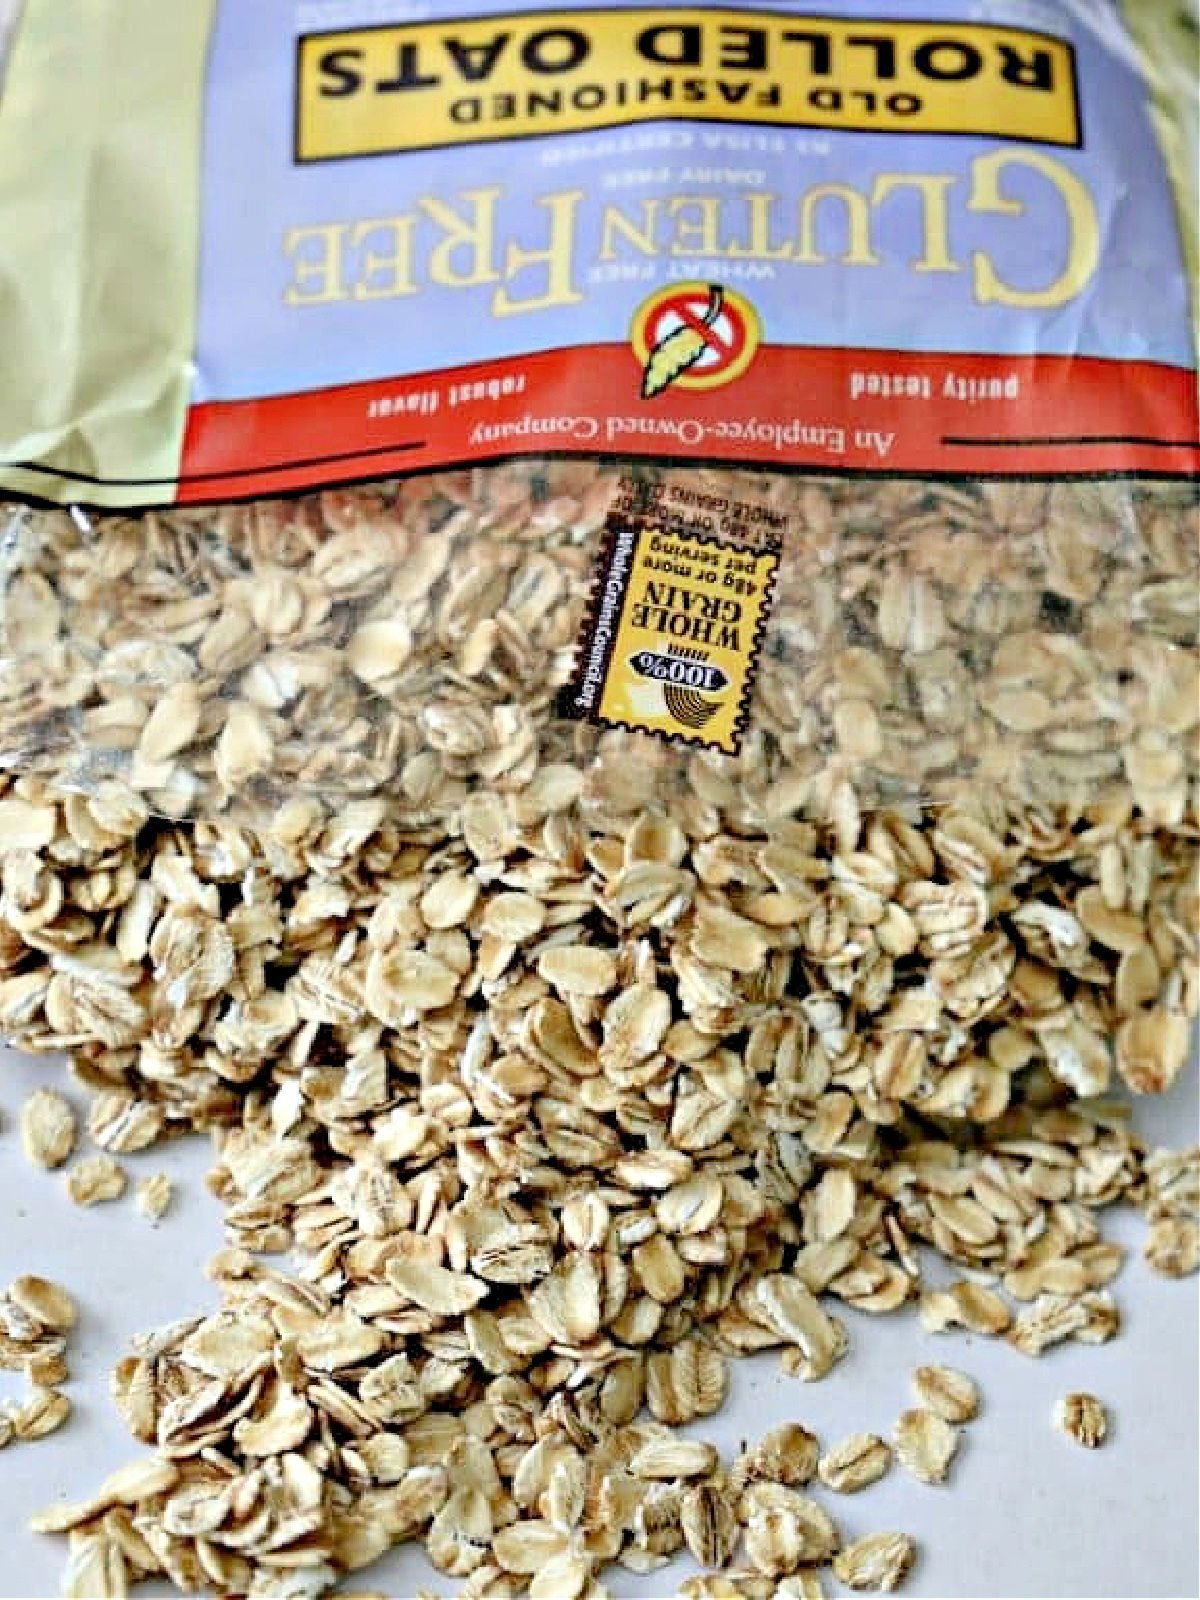 Bag of old fashioned oats spilling out onto a table.